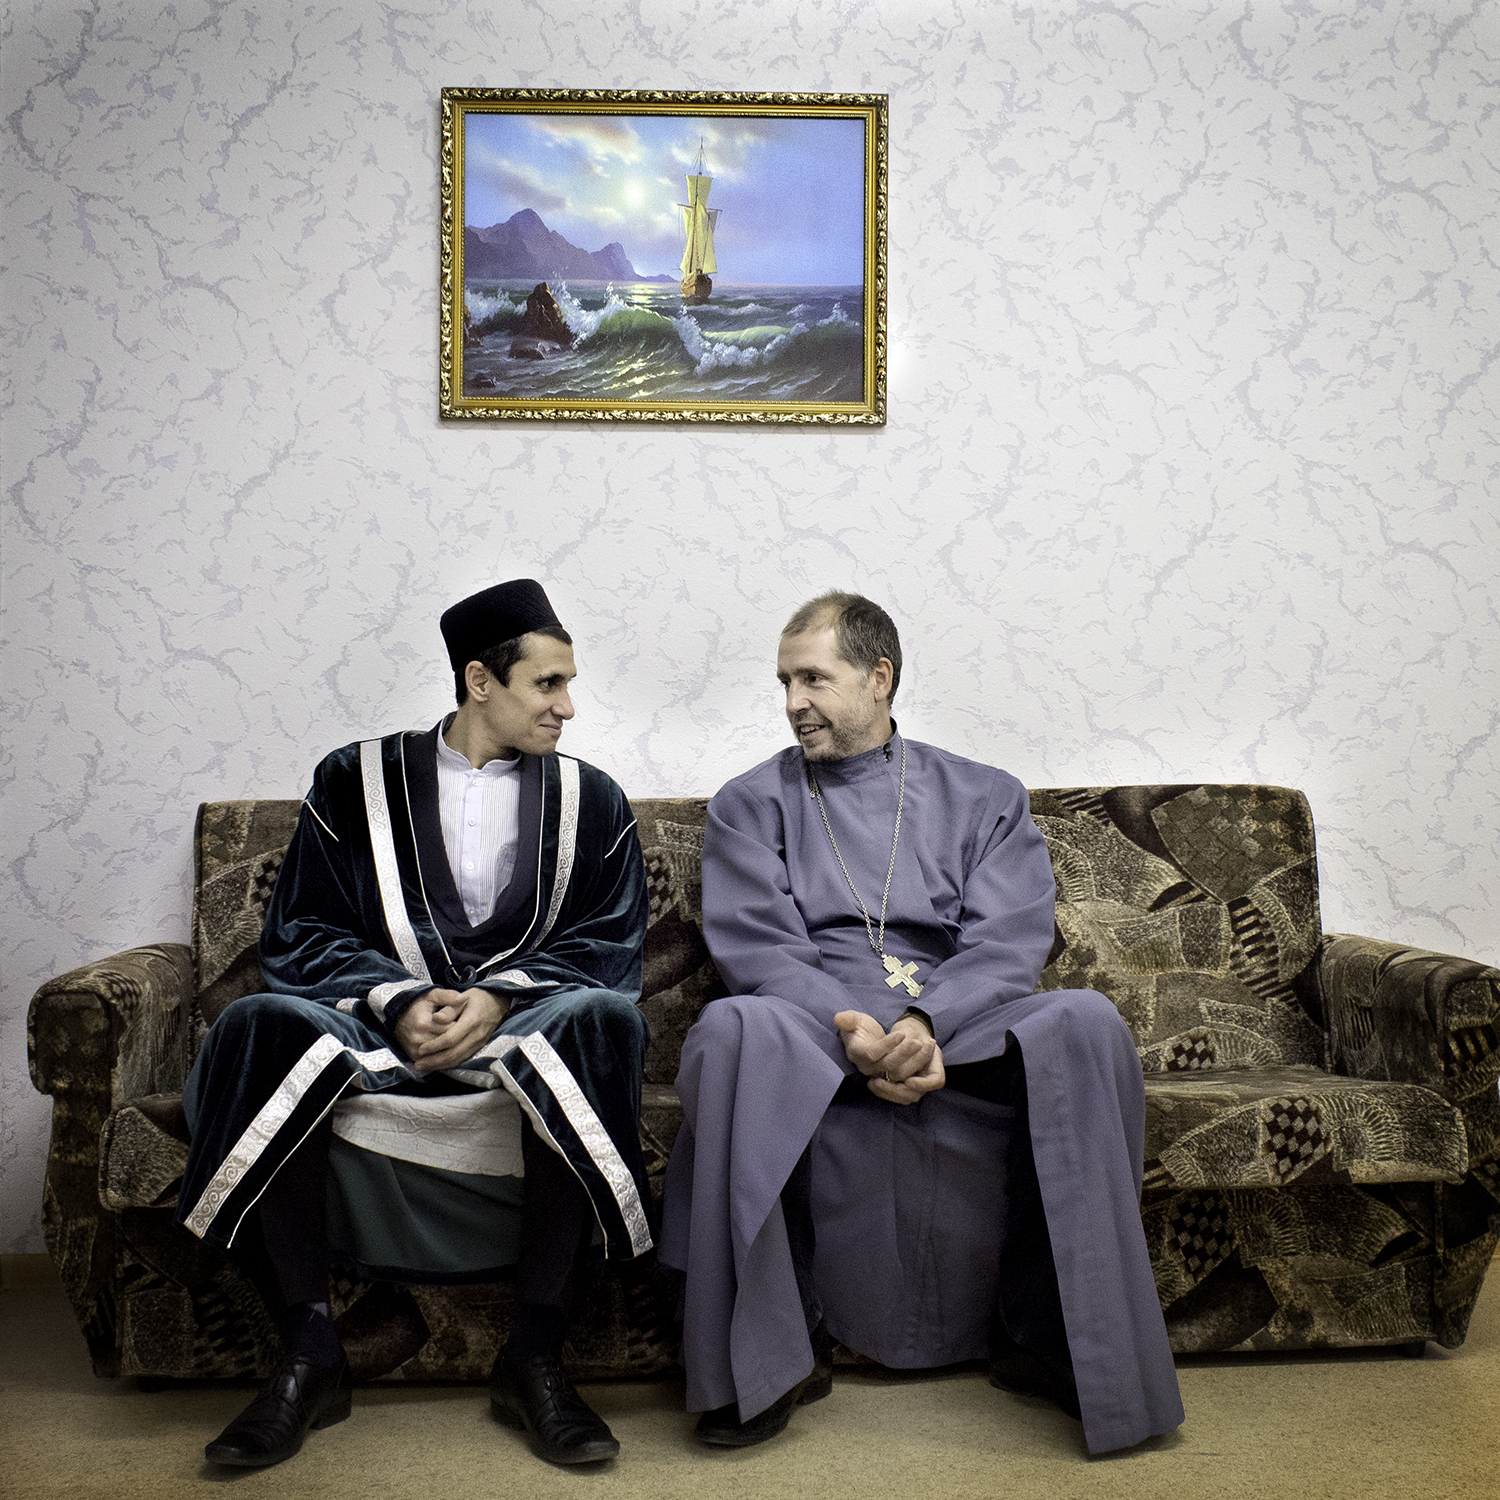 Orthdox Christian priest father Feodor (right) with a Muslim clergy at a school fete celebrating the Muslim sacrificial festival Kurban Bayram.